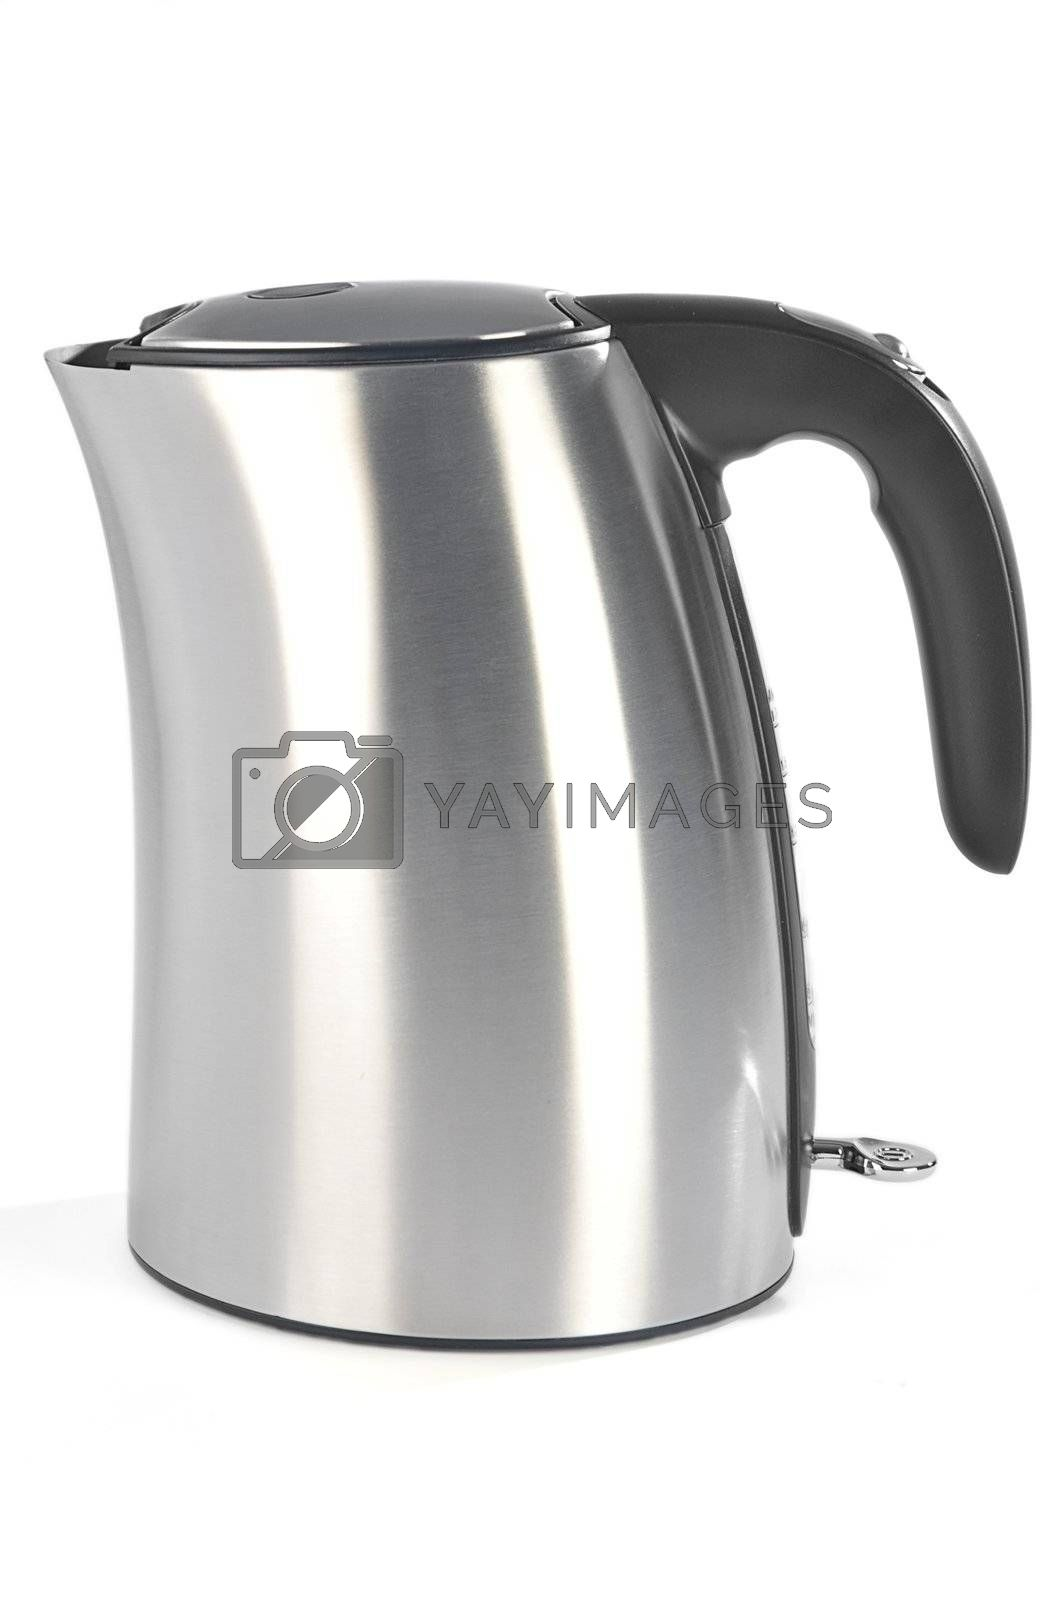 Metallic electric kettle isolated on white background